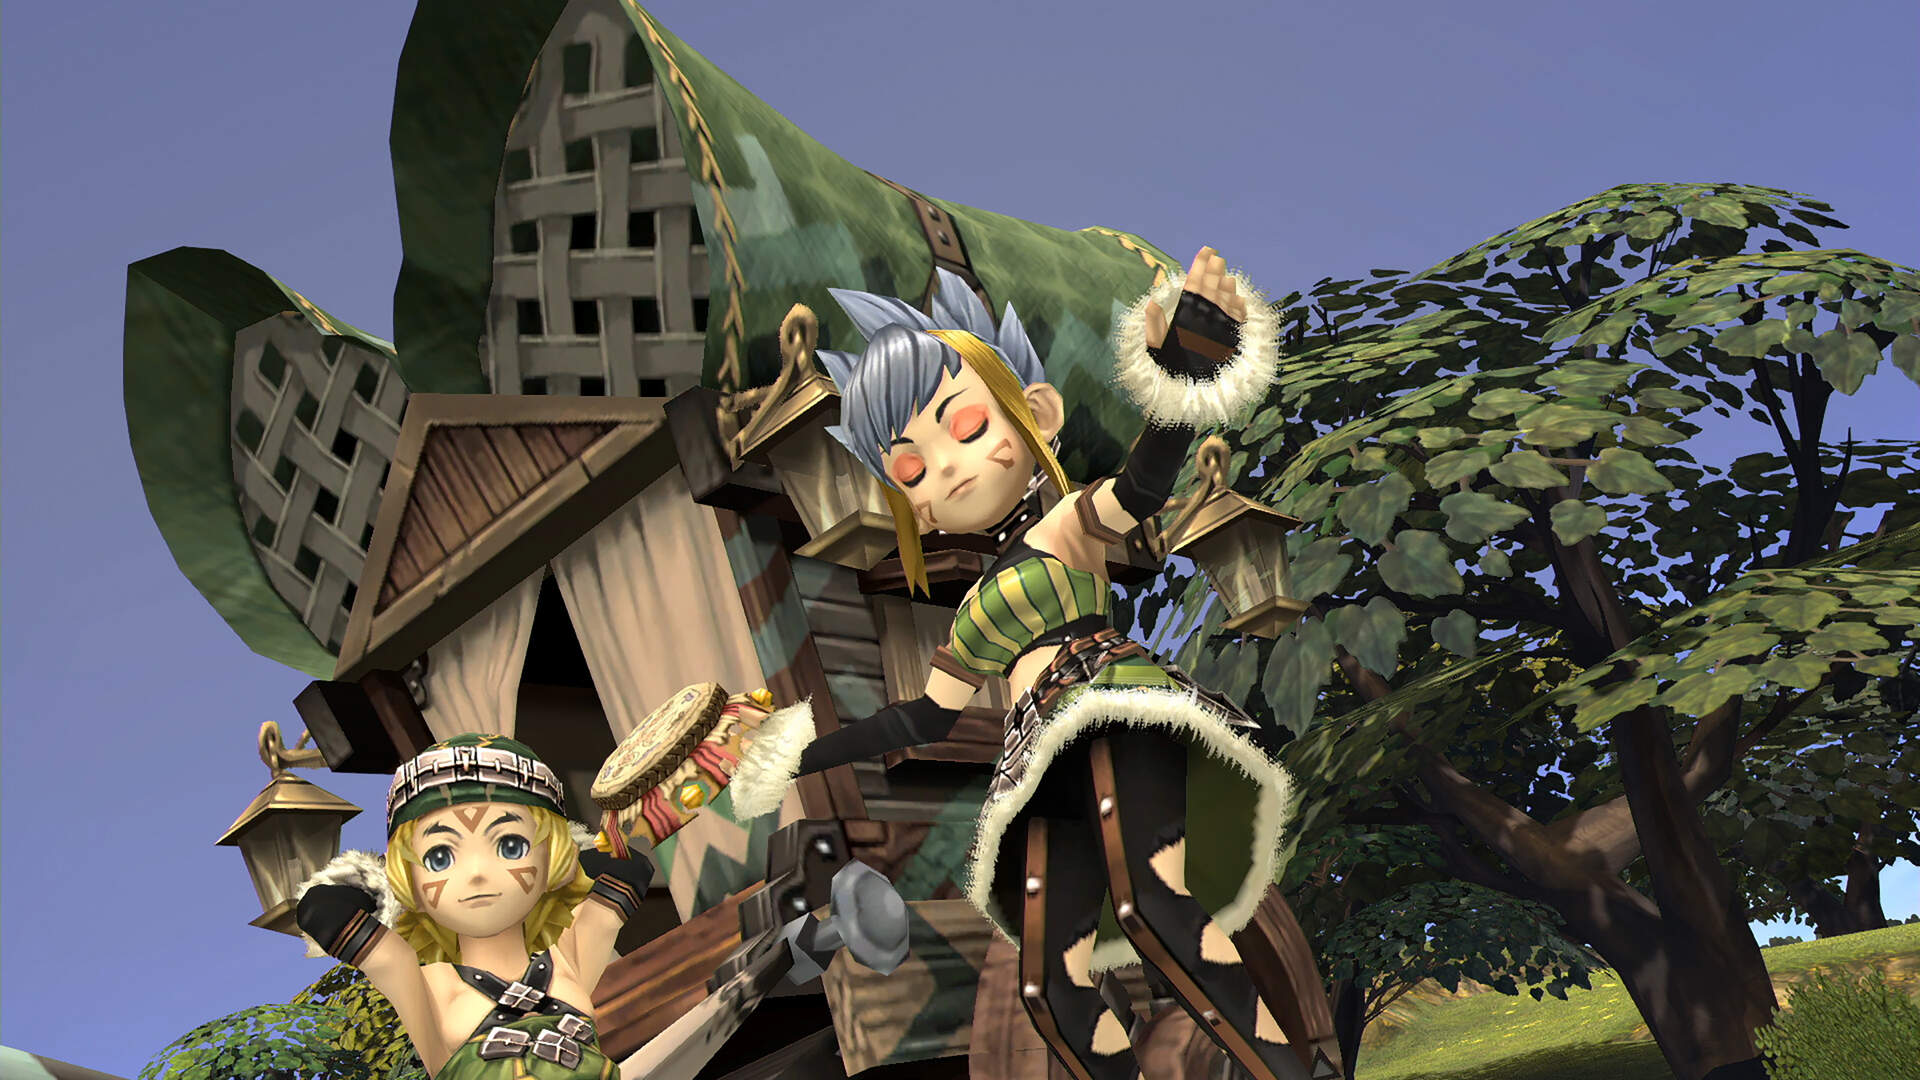 Final Fantasy: Crystal Chronicles Remastered is Getting a Slew of Updates and Fixes